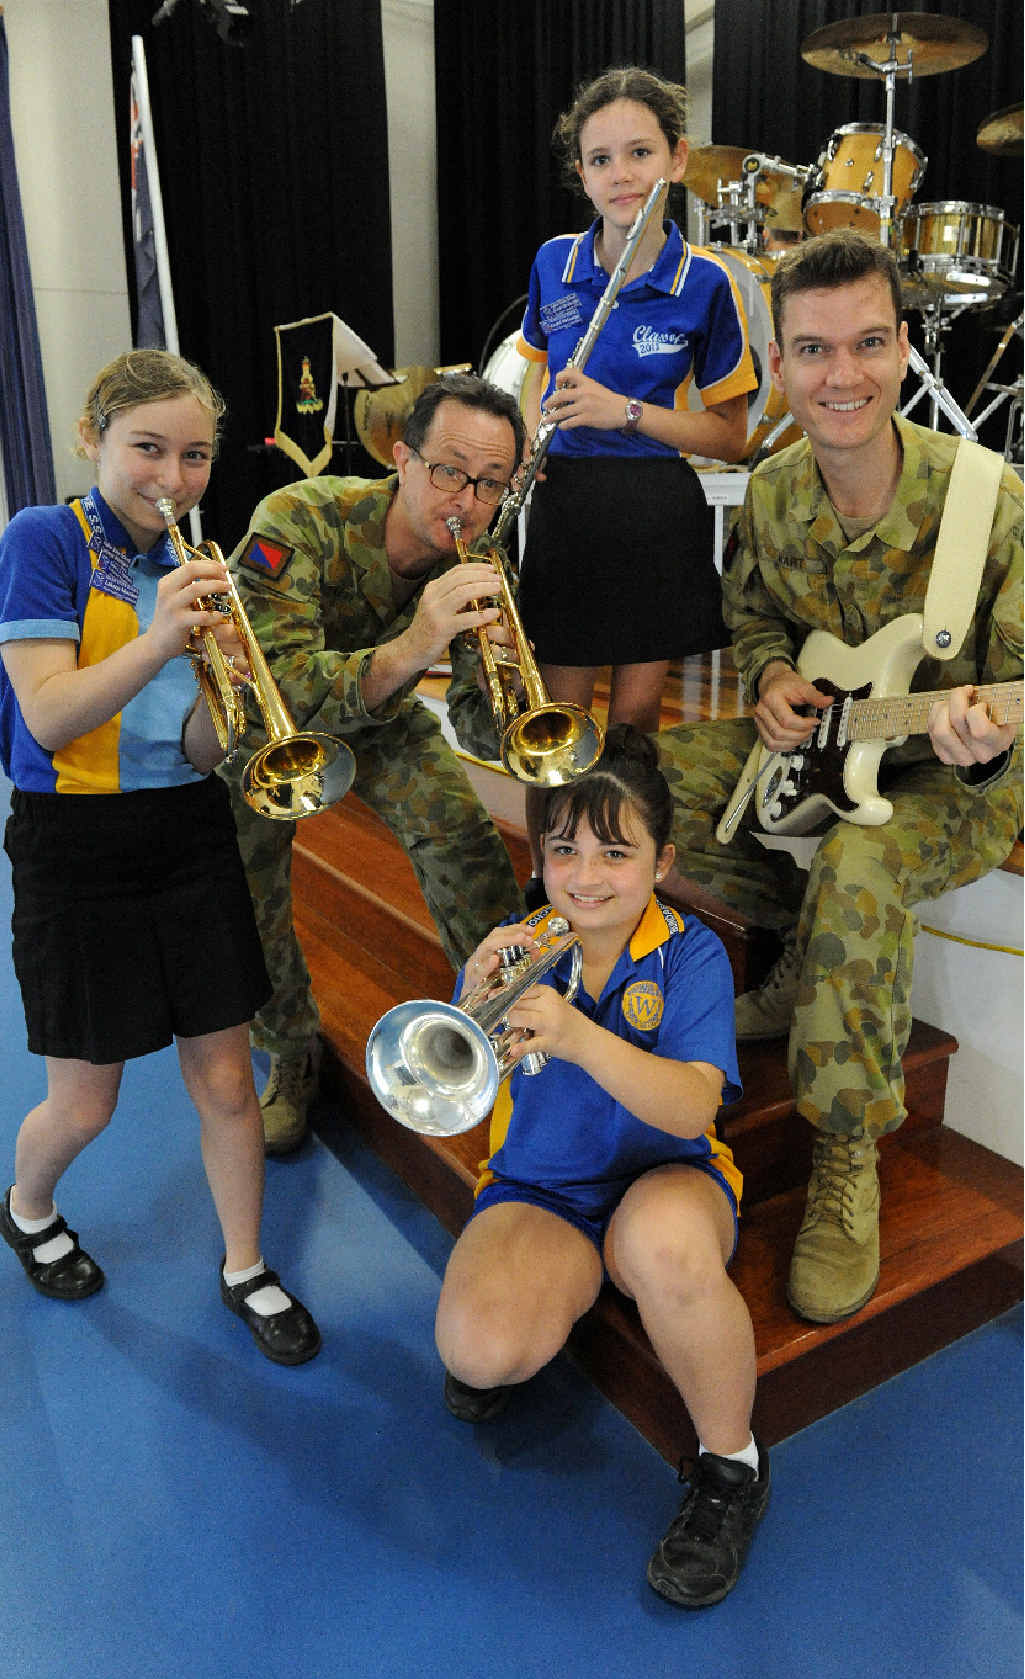 Kalkie State School students Lukaeja Morrison, Matilda Burt and Gretel McGeorge with the 1st Regiment Royal Australia Artillery Band musicians Warren Keir and Frank Hart.